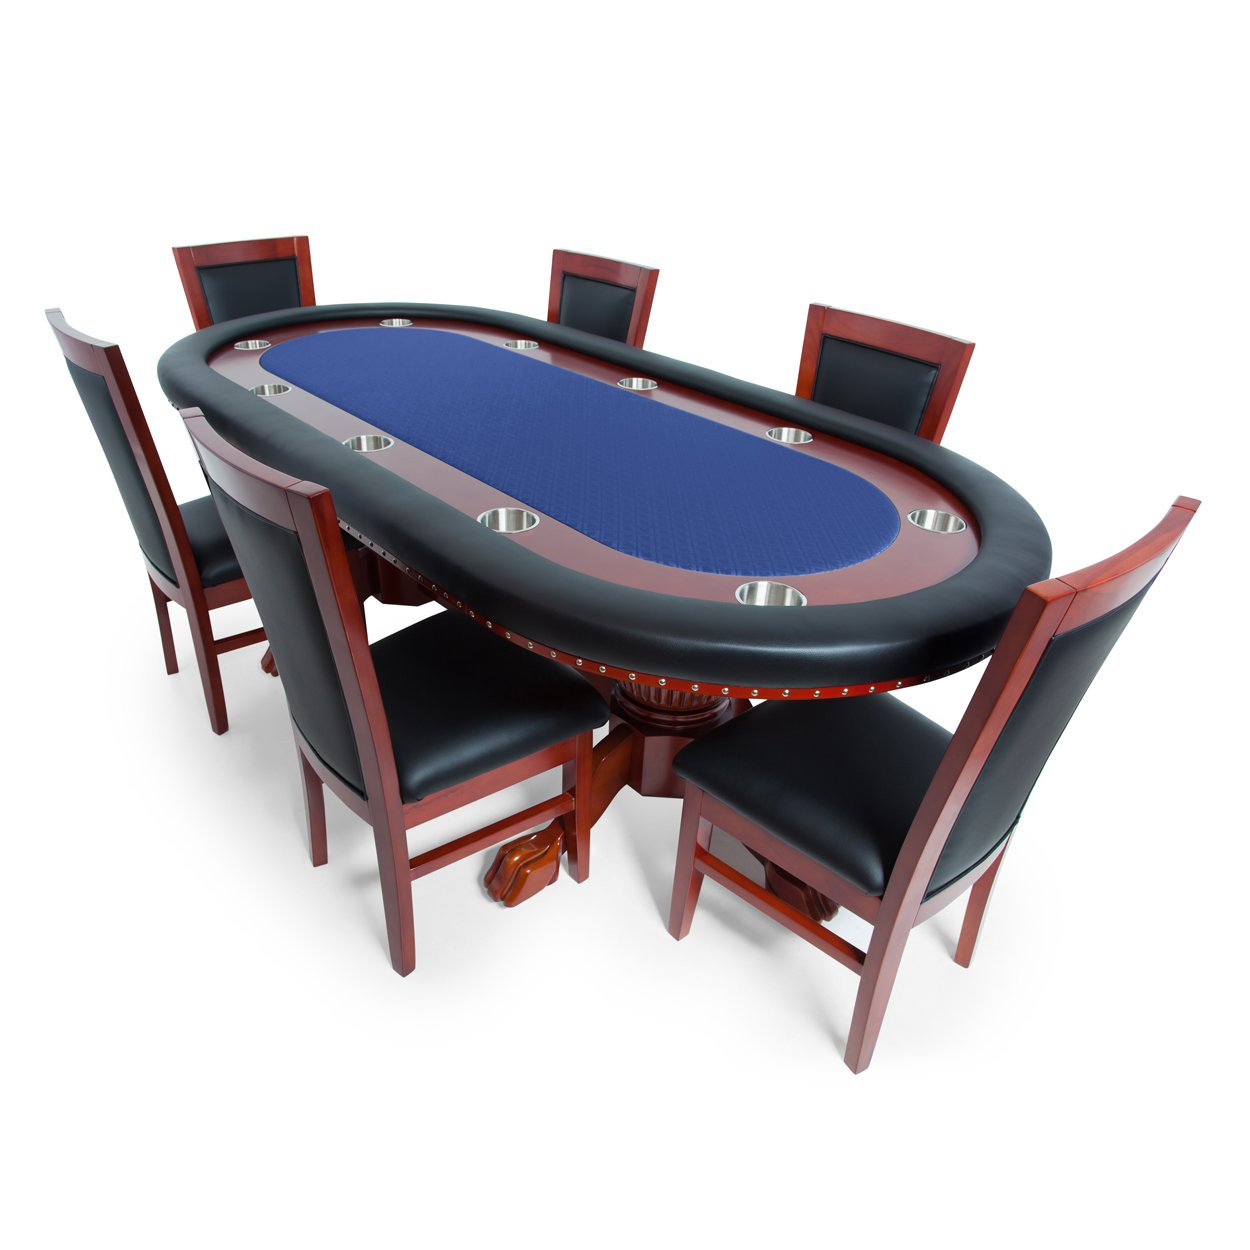 BBO Poker Rockwell Poker Table for 10 Players with Blue Speed Cloth Playing Surface, 94 x 44-Inch Oval, Includes 6 Dining Chairs